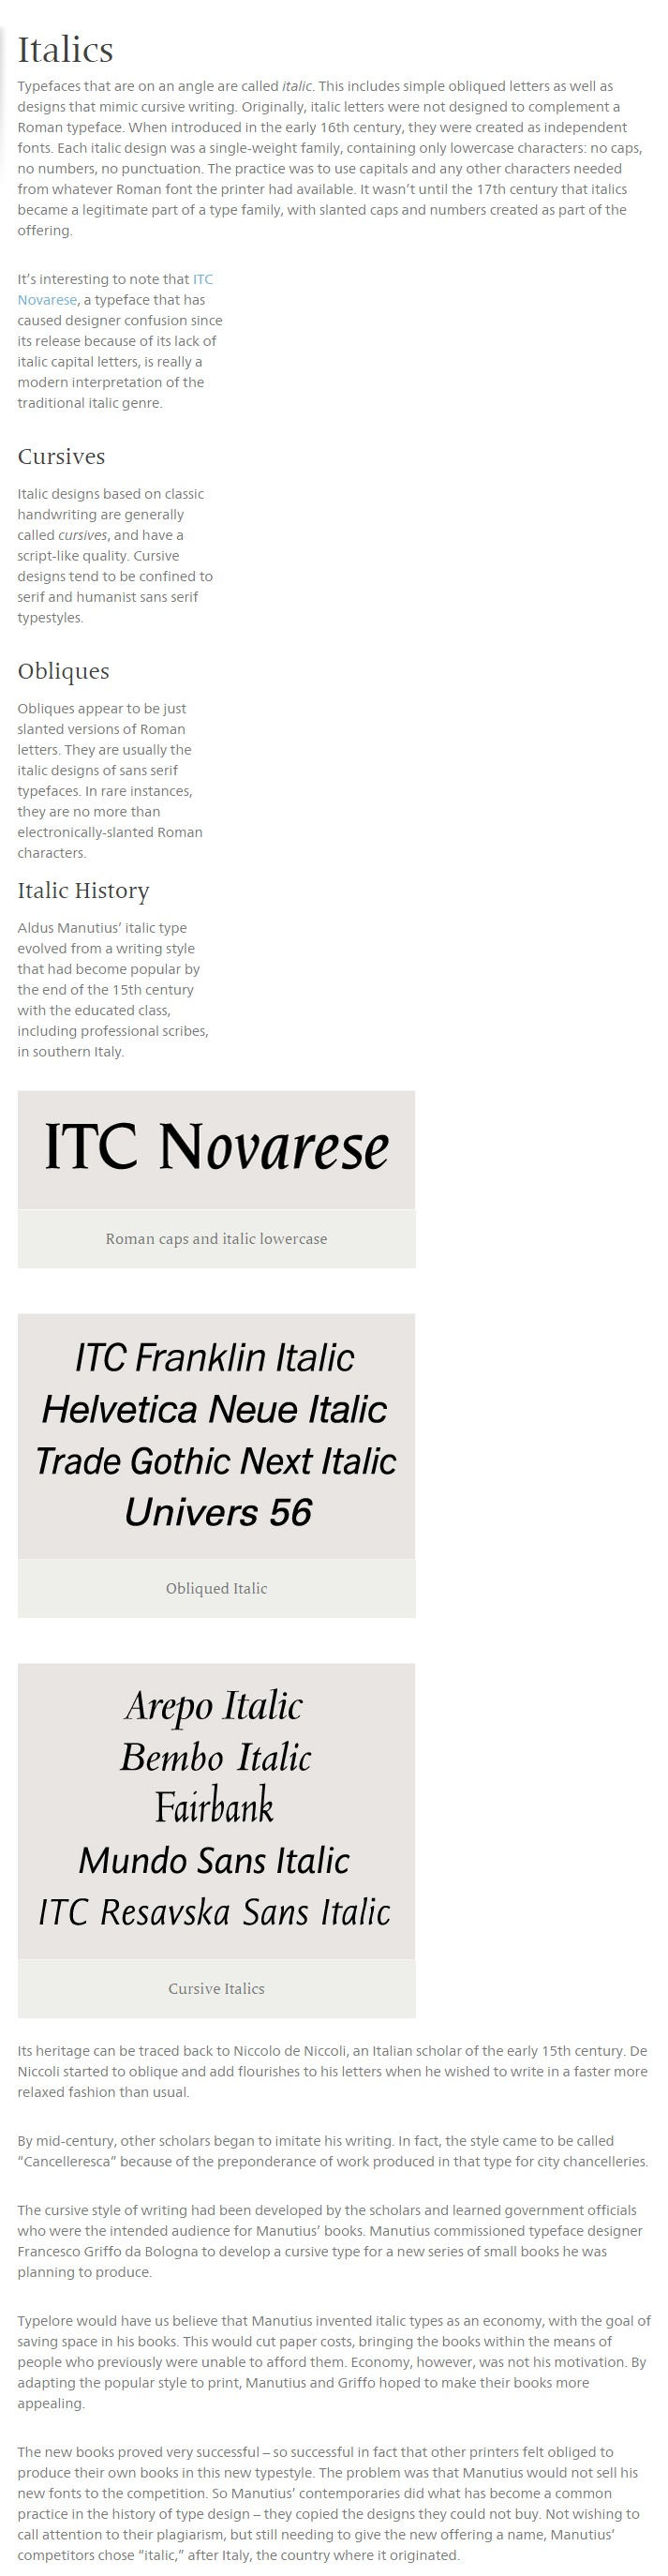 Italics by Fonts.com http://www.fonts.com/content/learning/fontology ...